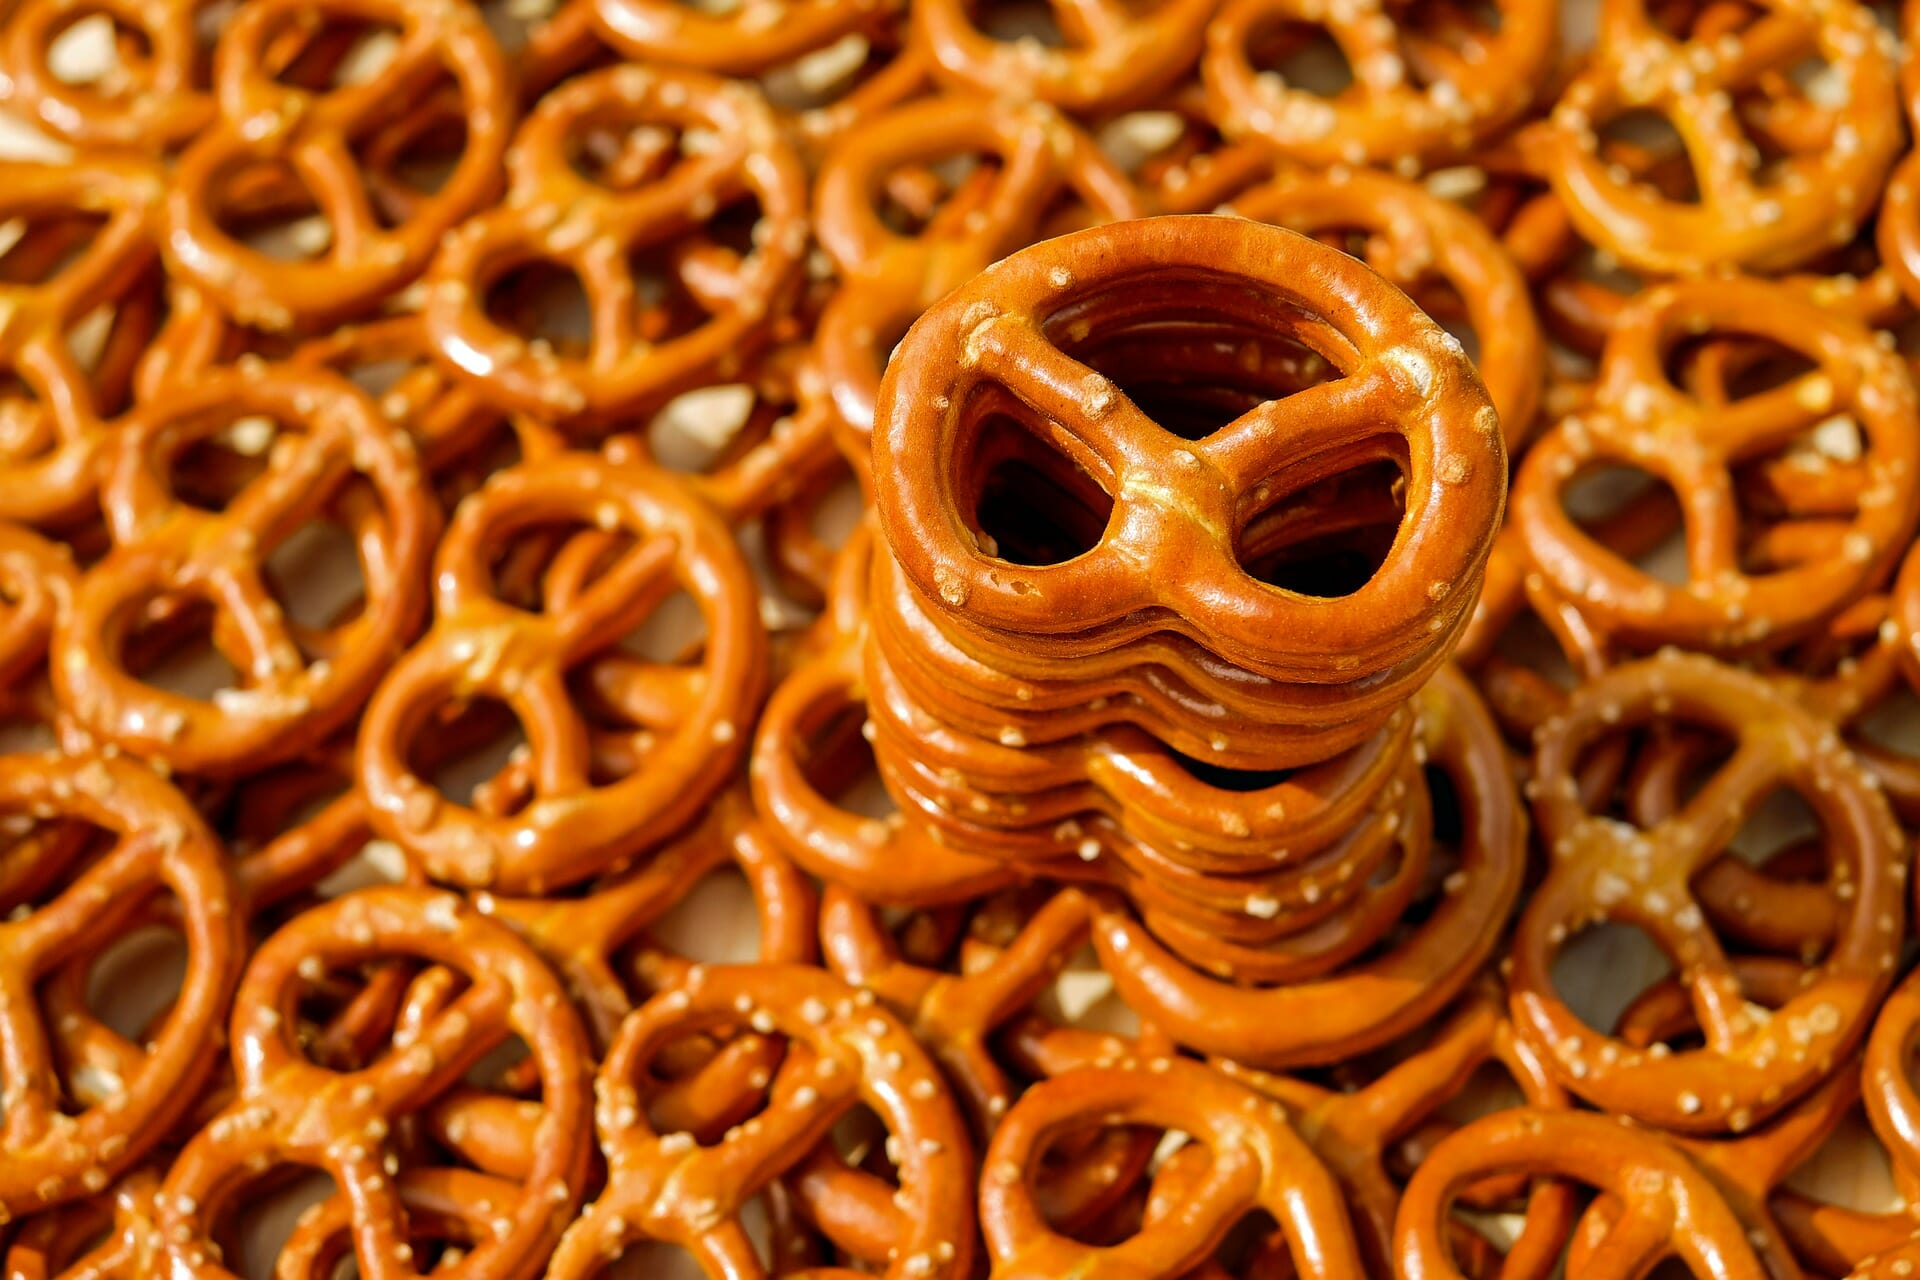 A stack of pretzels